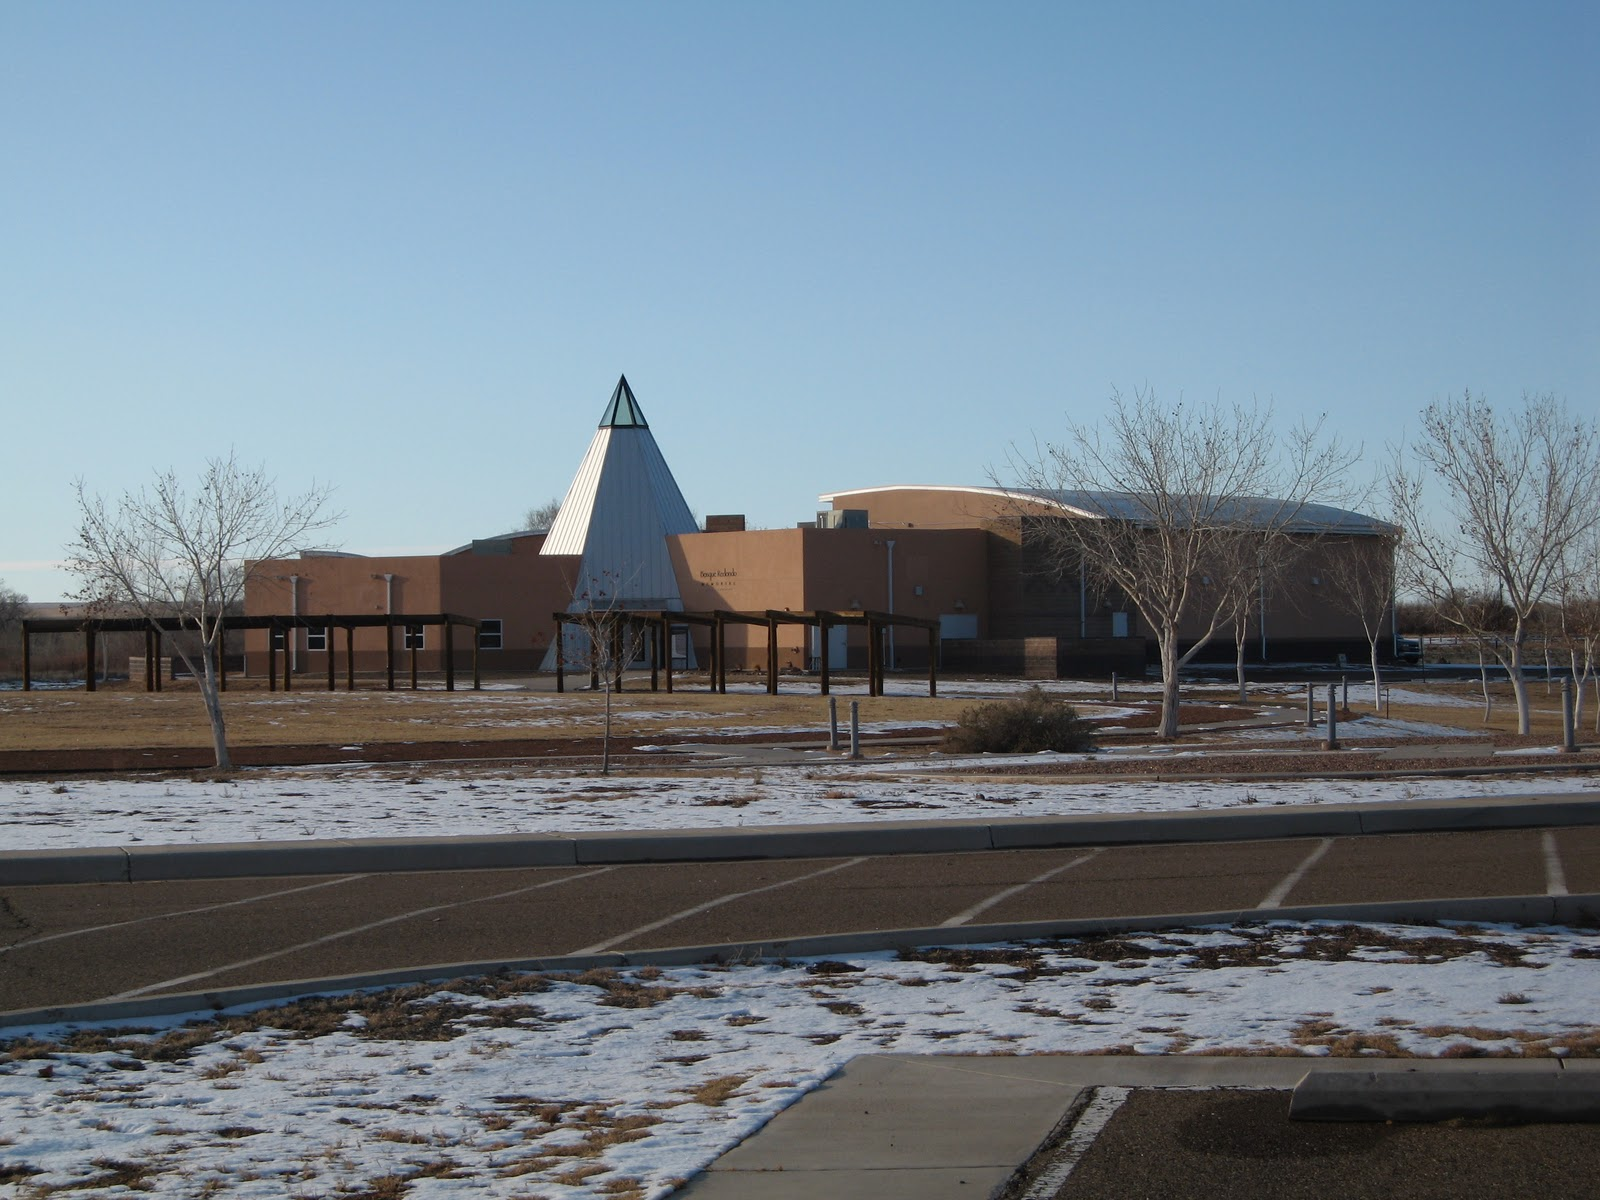 fort sumner Search inmates at the fort sumner nm police jail located in fort sumner, nm this short-term holding jail is operated by the fort sumner police dept search outstanding warrants, arrest records and get bail bond information.